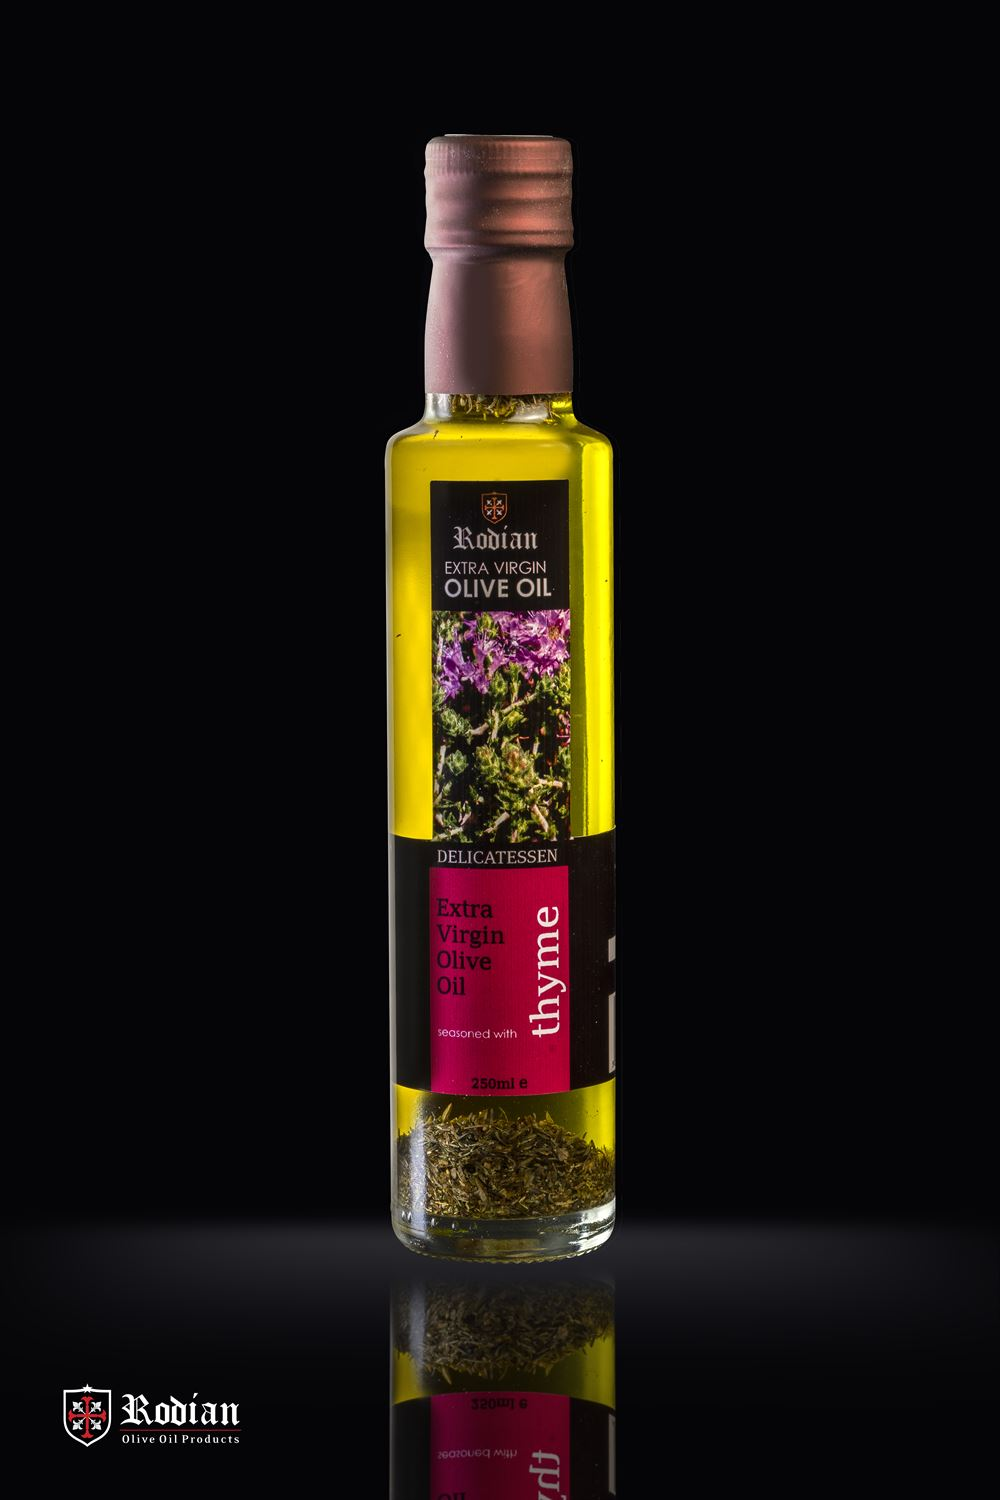 Delicatessen Extra Virgin Olive Oil with Thyme